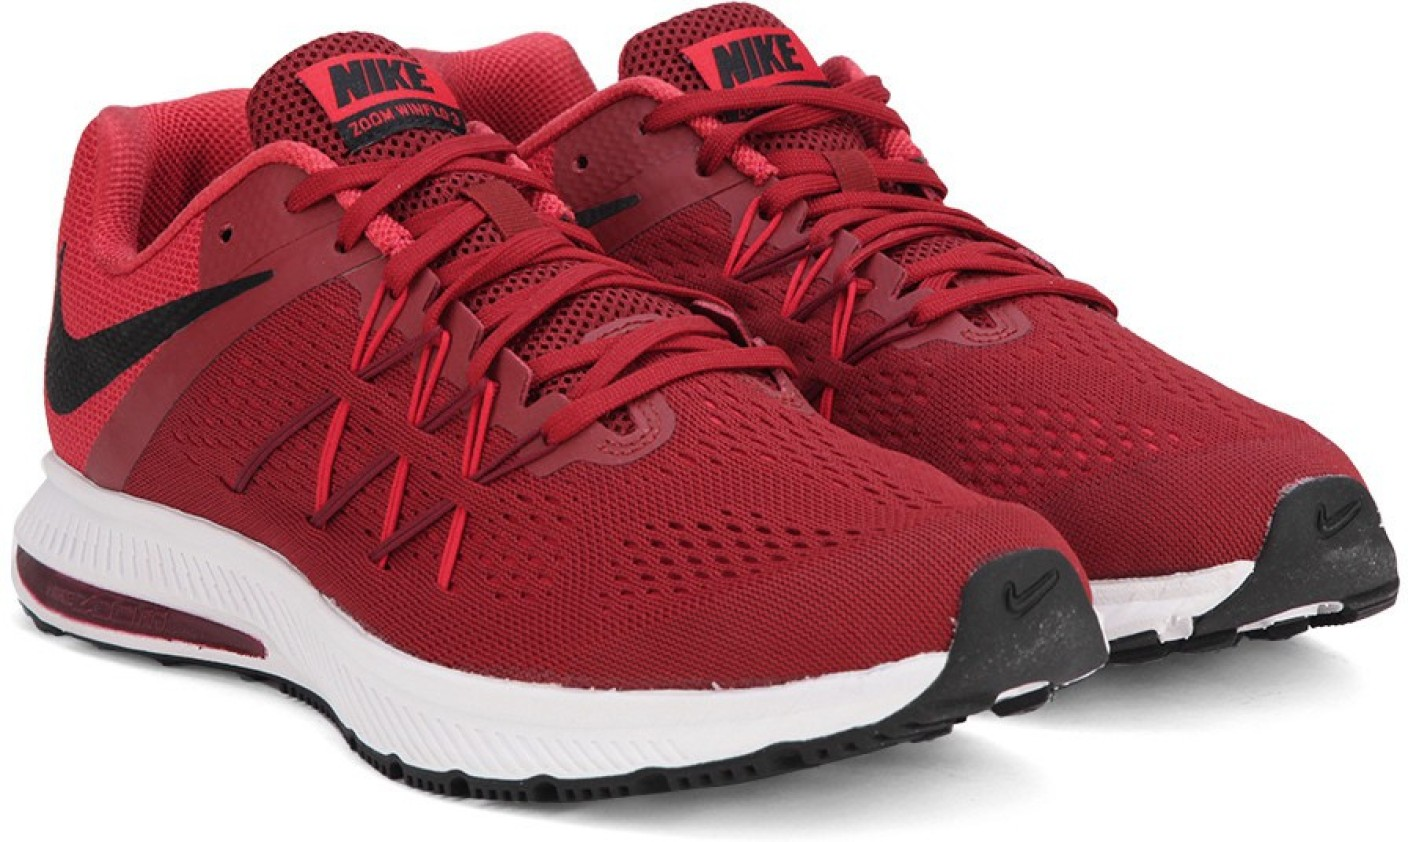 classic fit 4e65f 8babd ... Nike ZOOM WINFLO 3 Running Shoes For Men.